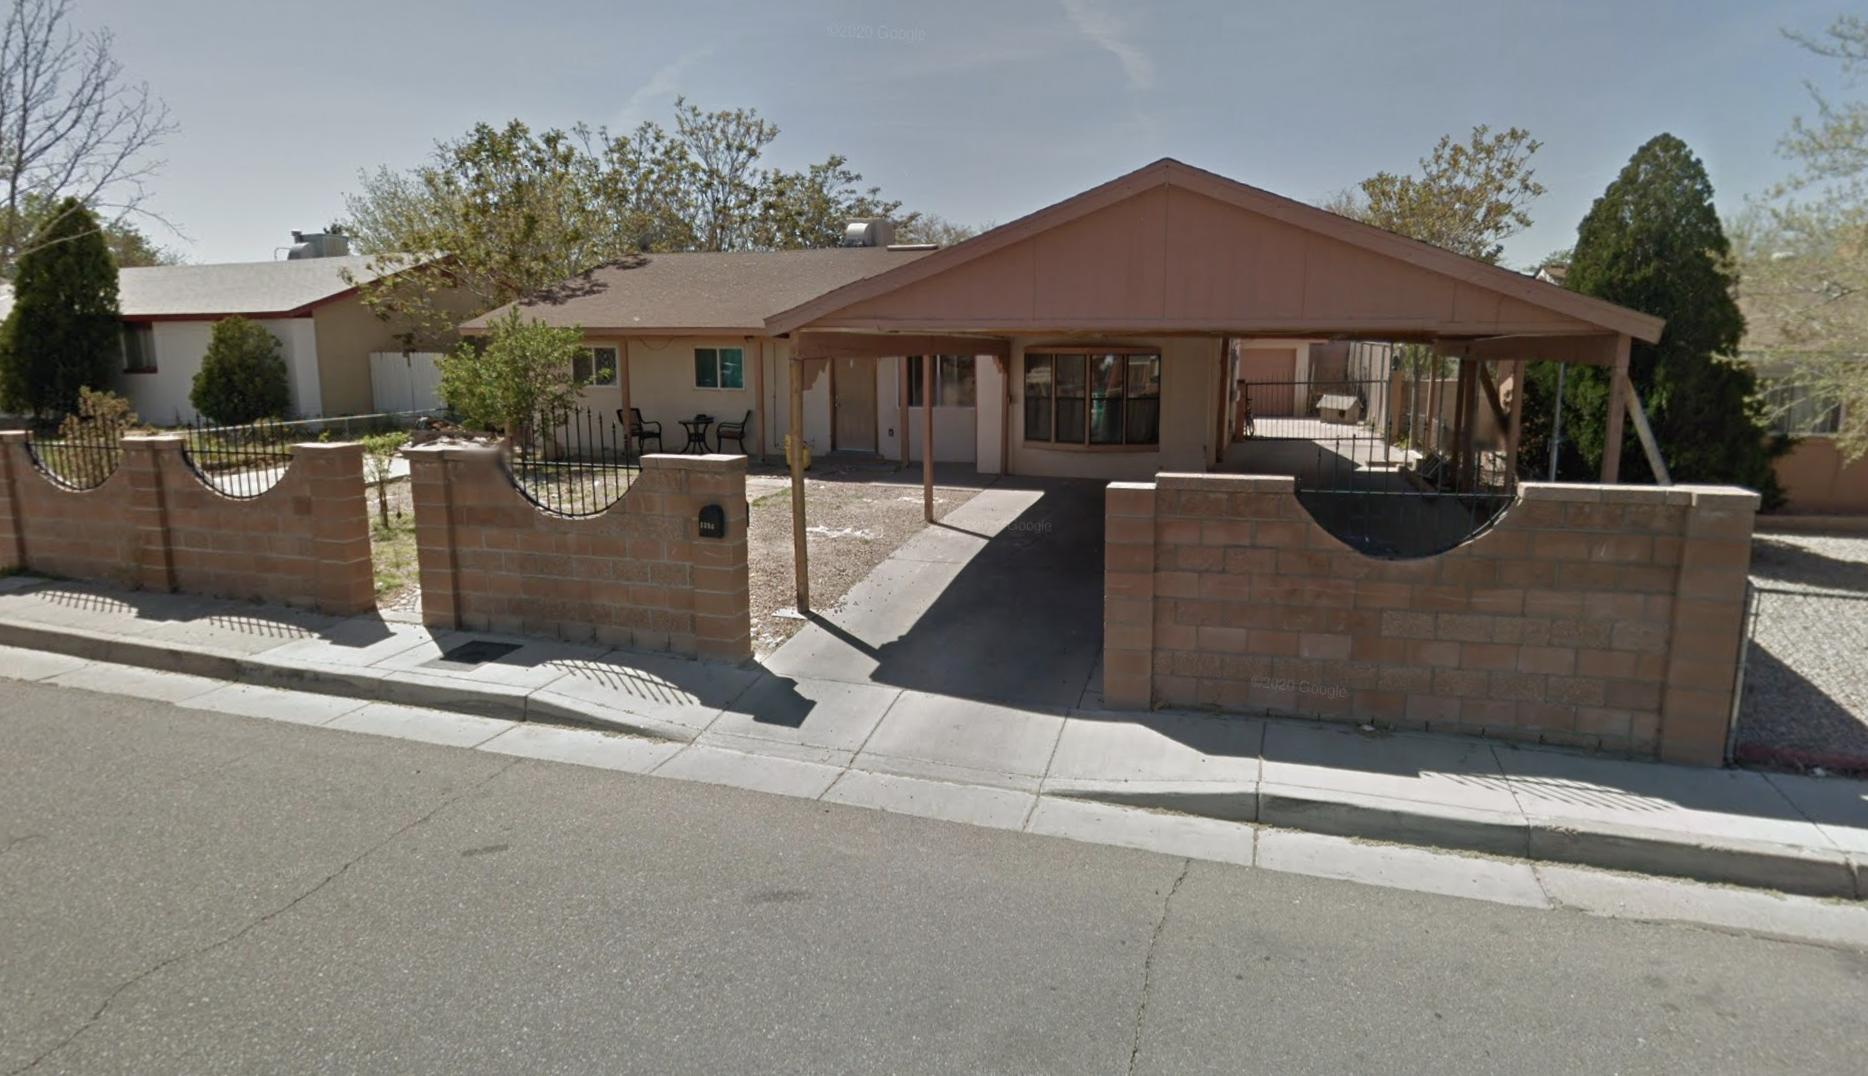 1312 ANACONDA Street, Albuquerque NM 87121